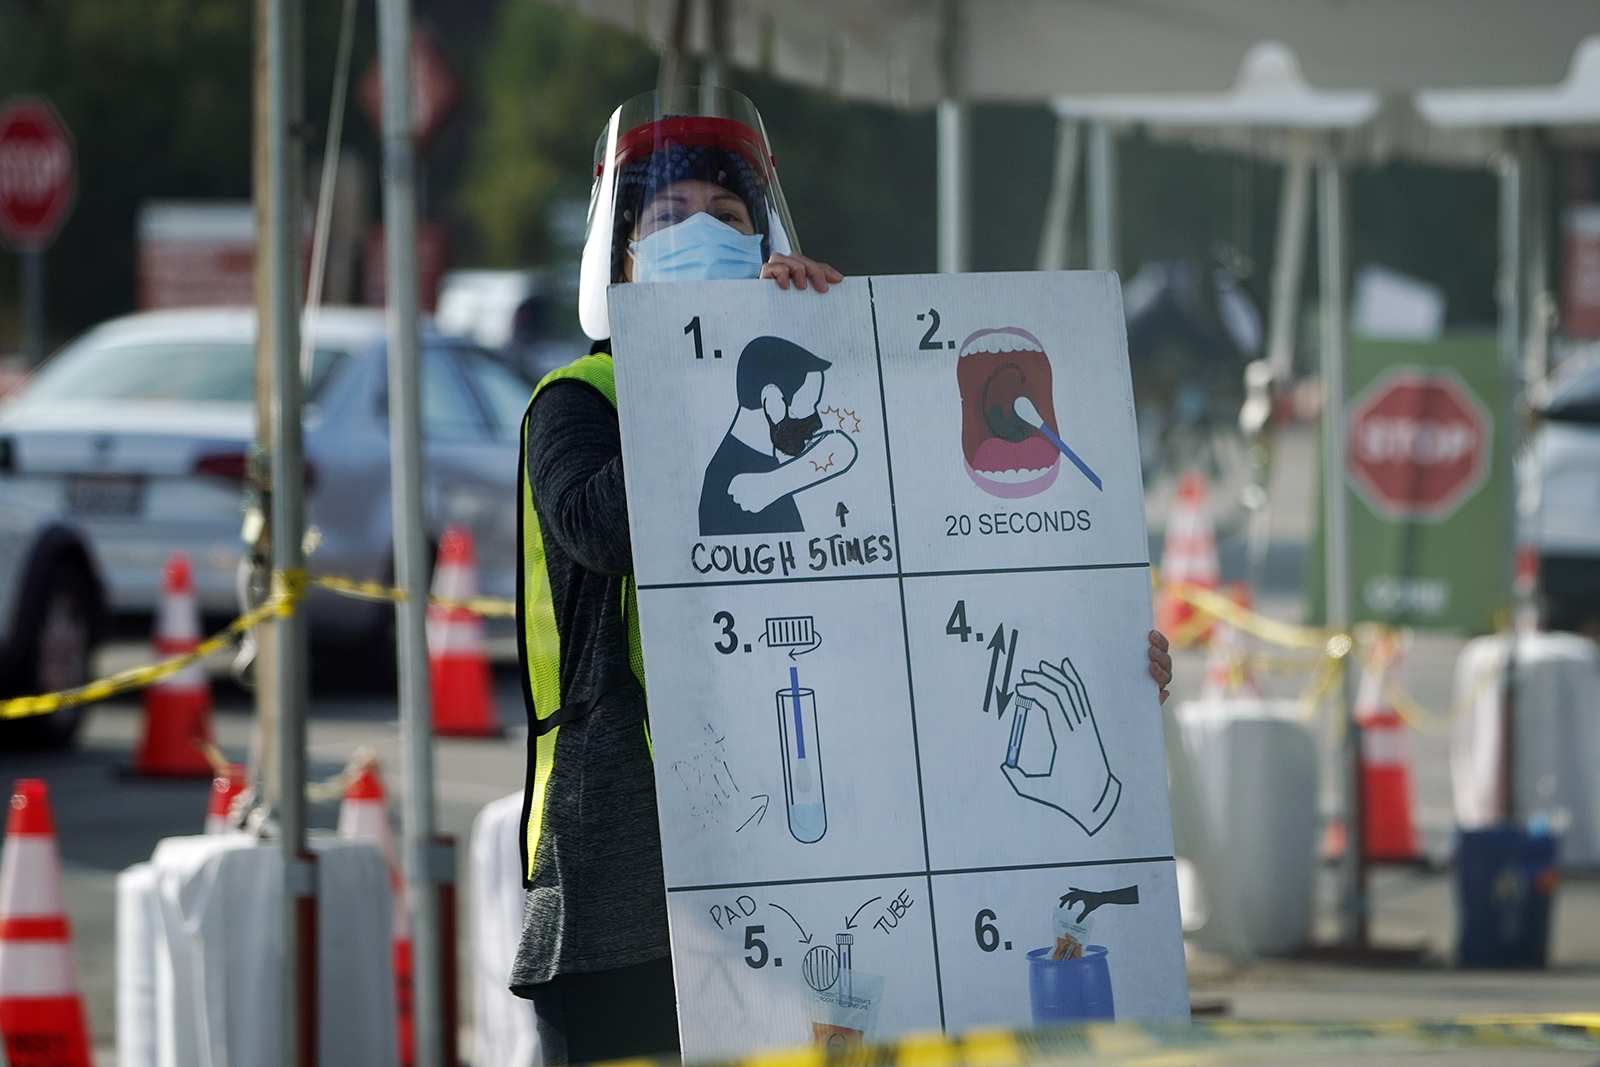 In this Jan. 5, 2021 file photo, a worker gives instructions to motorists at a drive-thru COVID-19 testing site in Los Angeles. (AP Photo/Marcio Jose Sanchez)